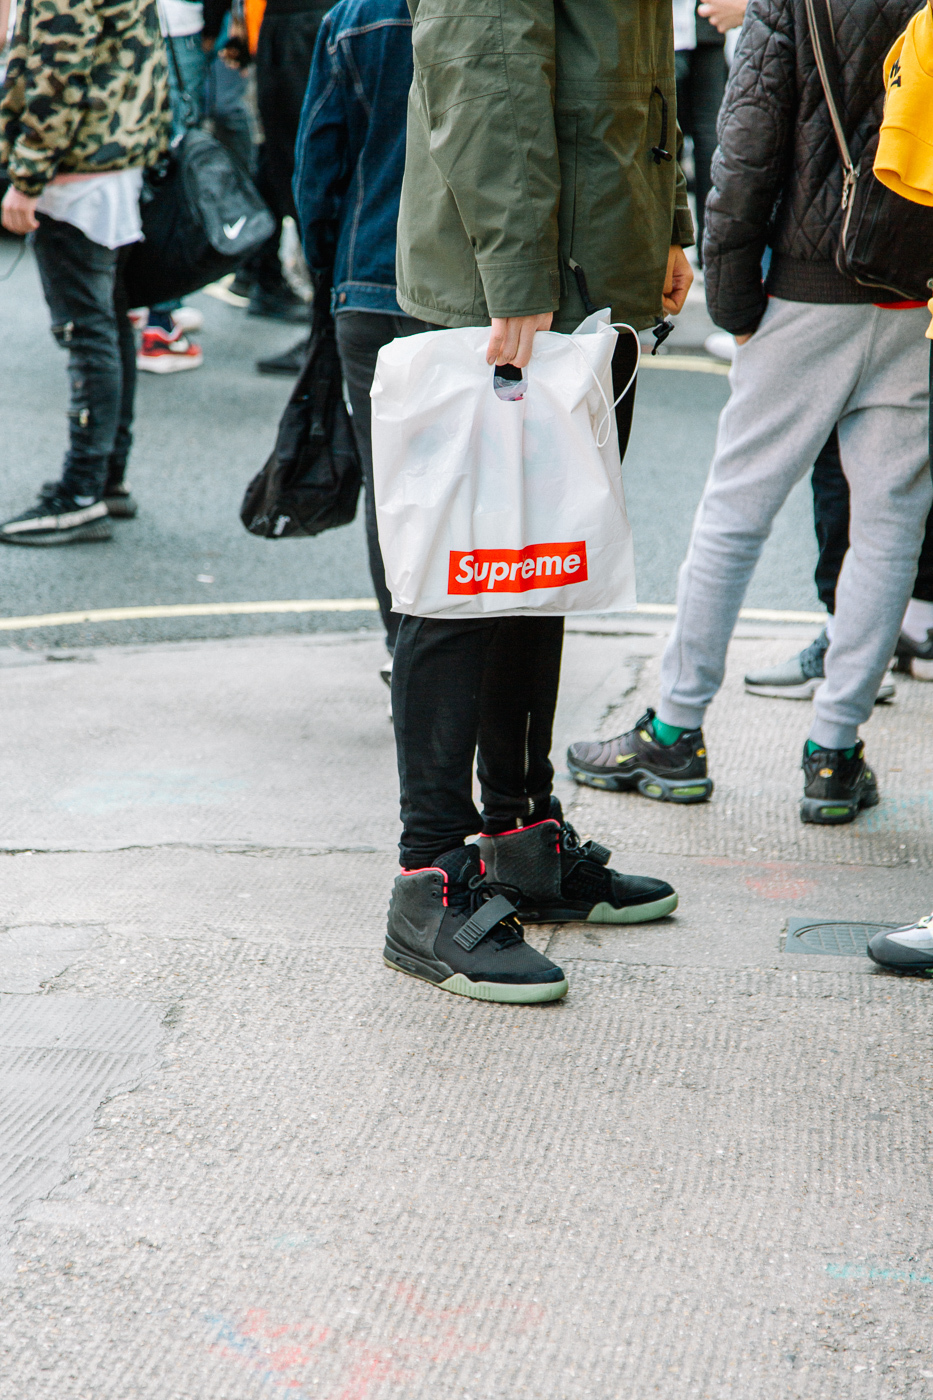 Supreme, pop up, how to build a pop up, London pop up, things to see in London, short-term retail,